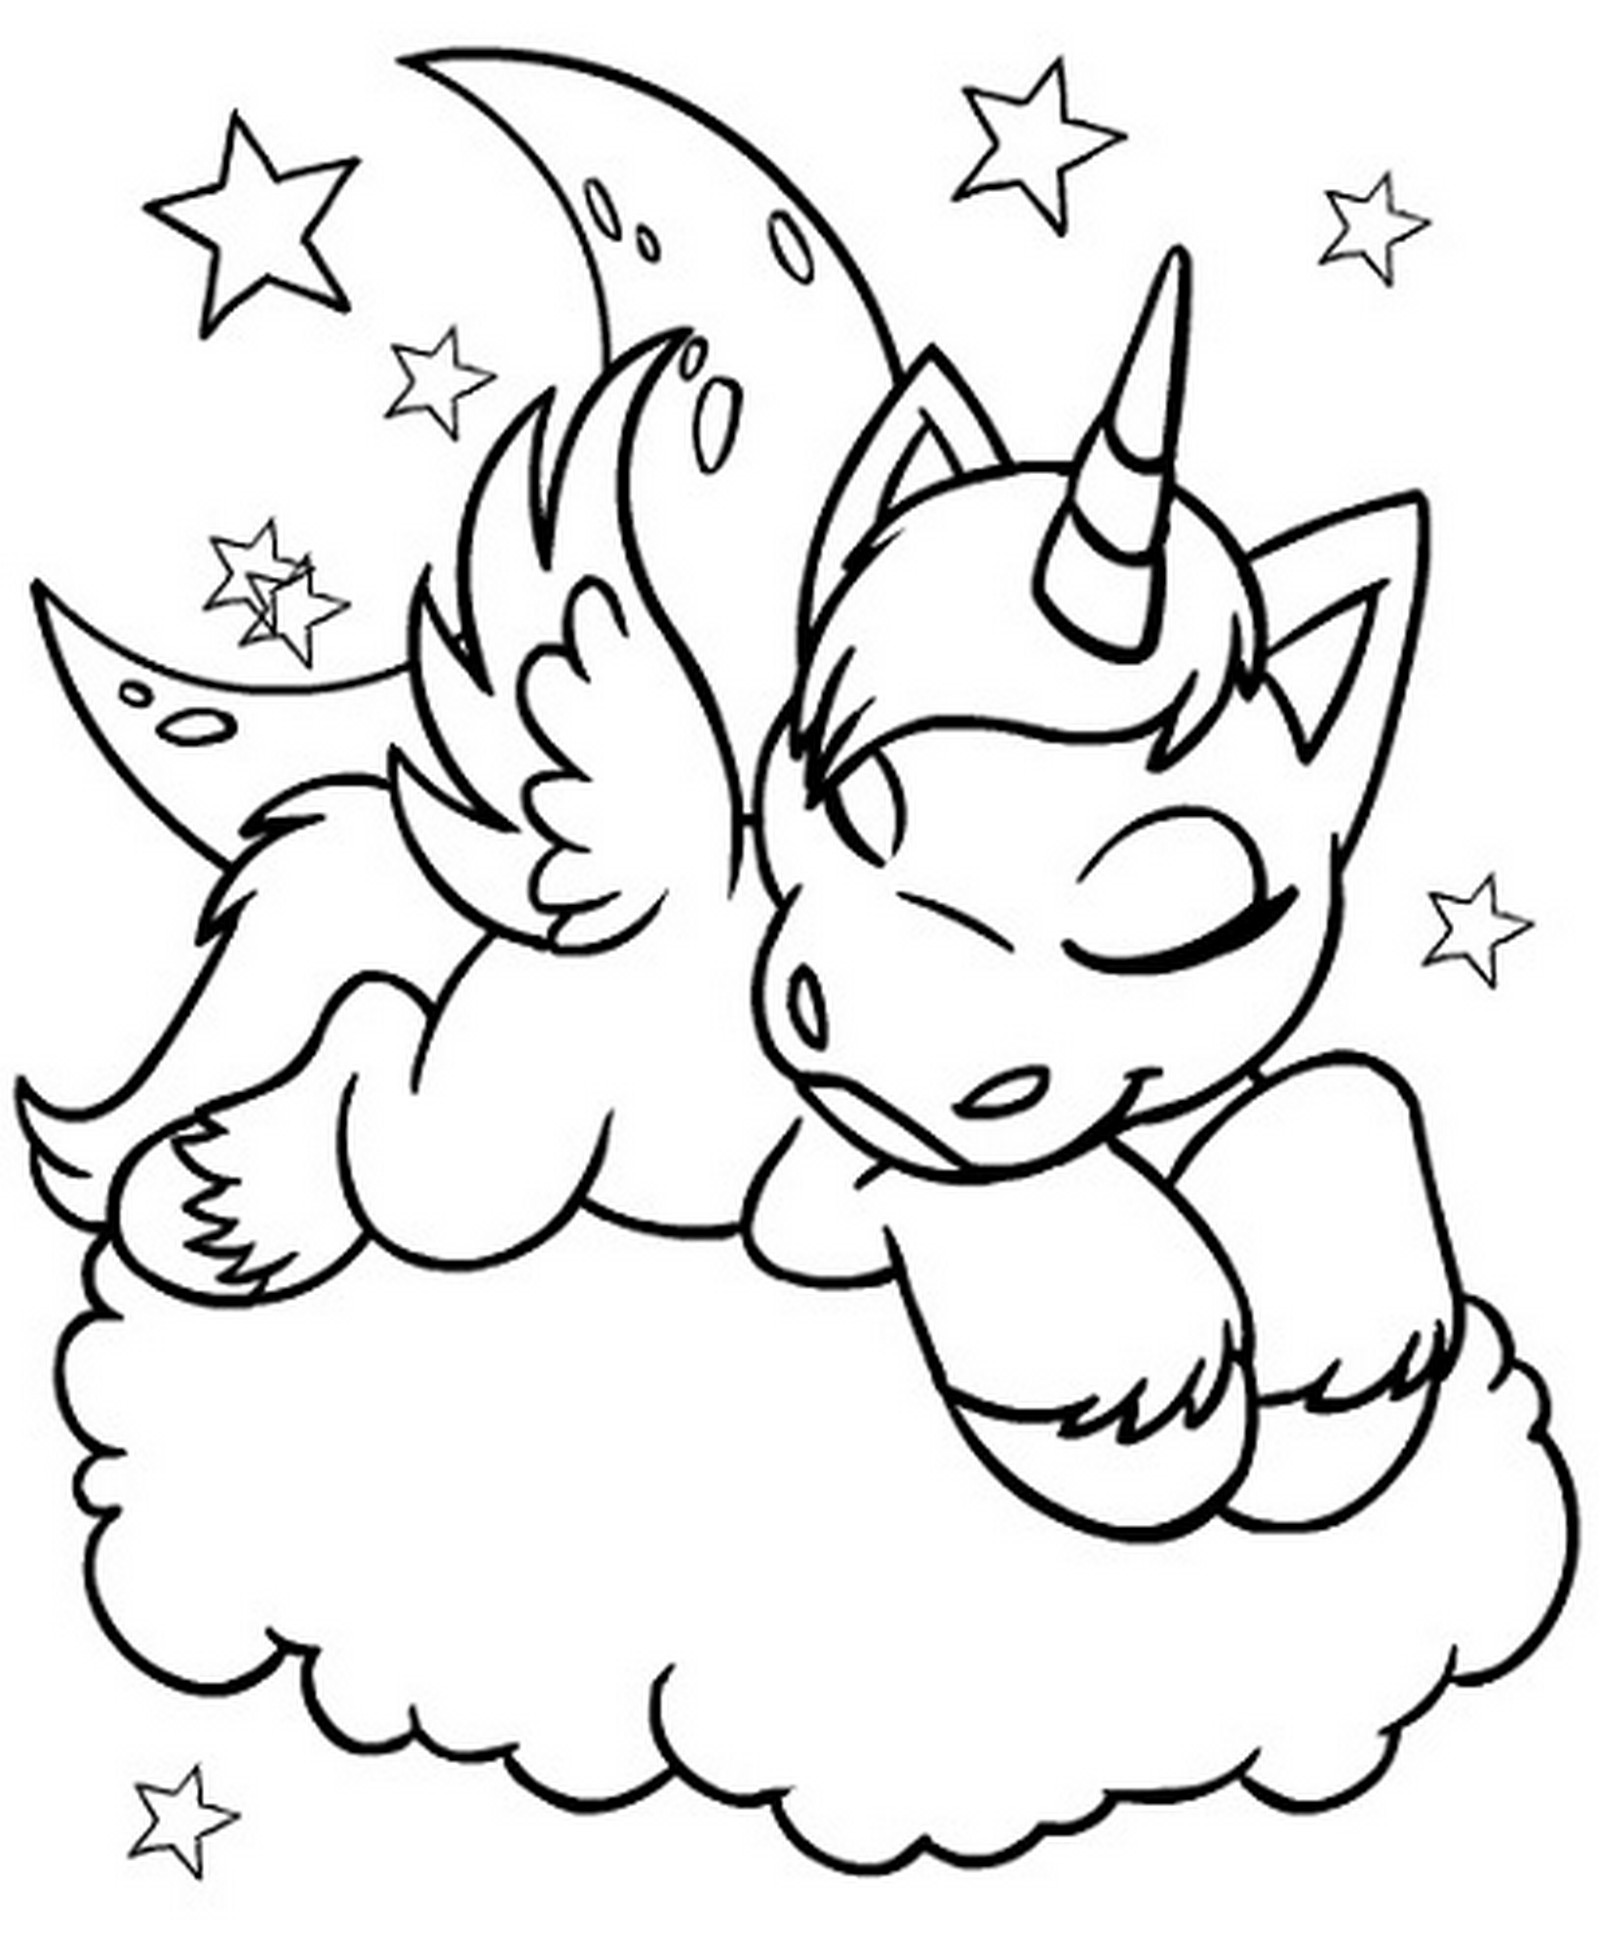 unicorn coloring to print unicorn with bow at tail coloring page free printable unicorn to print coloring